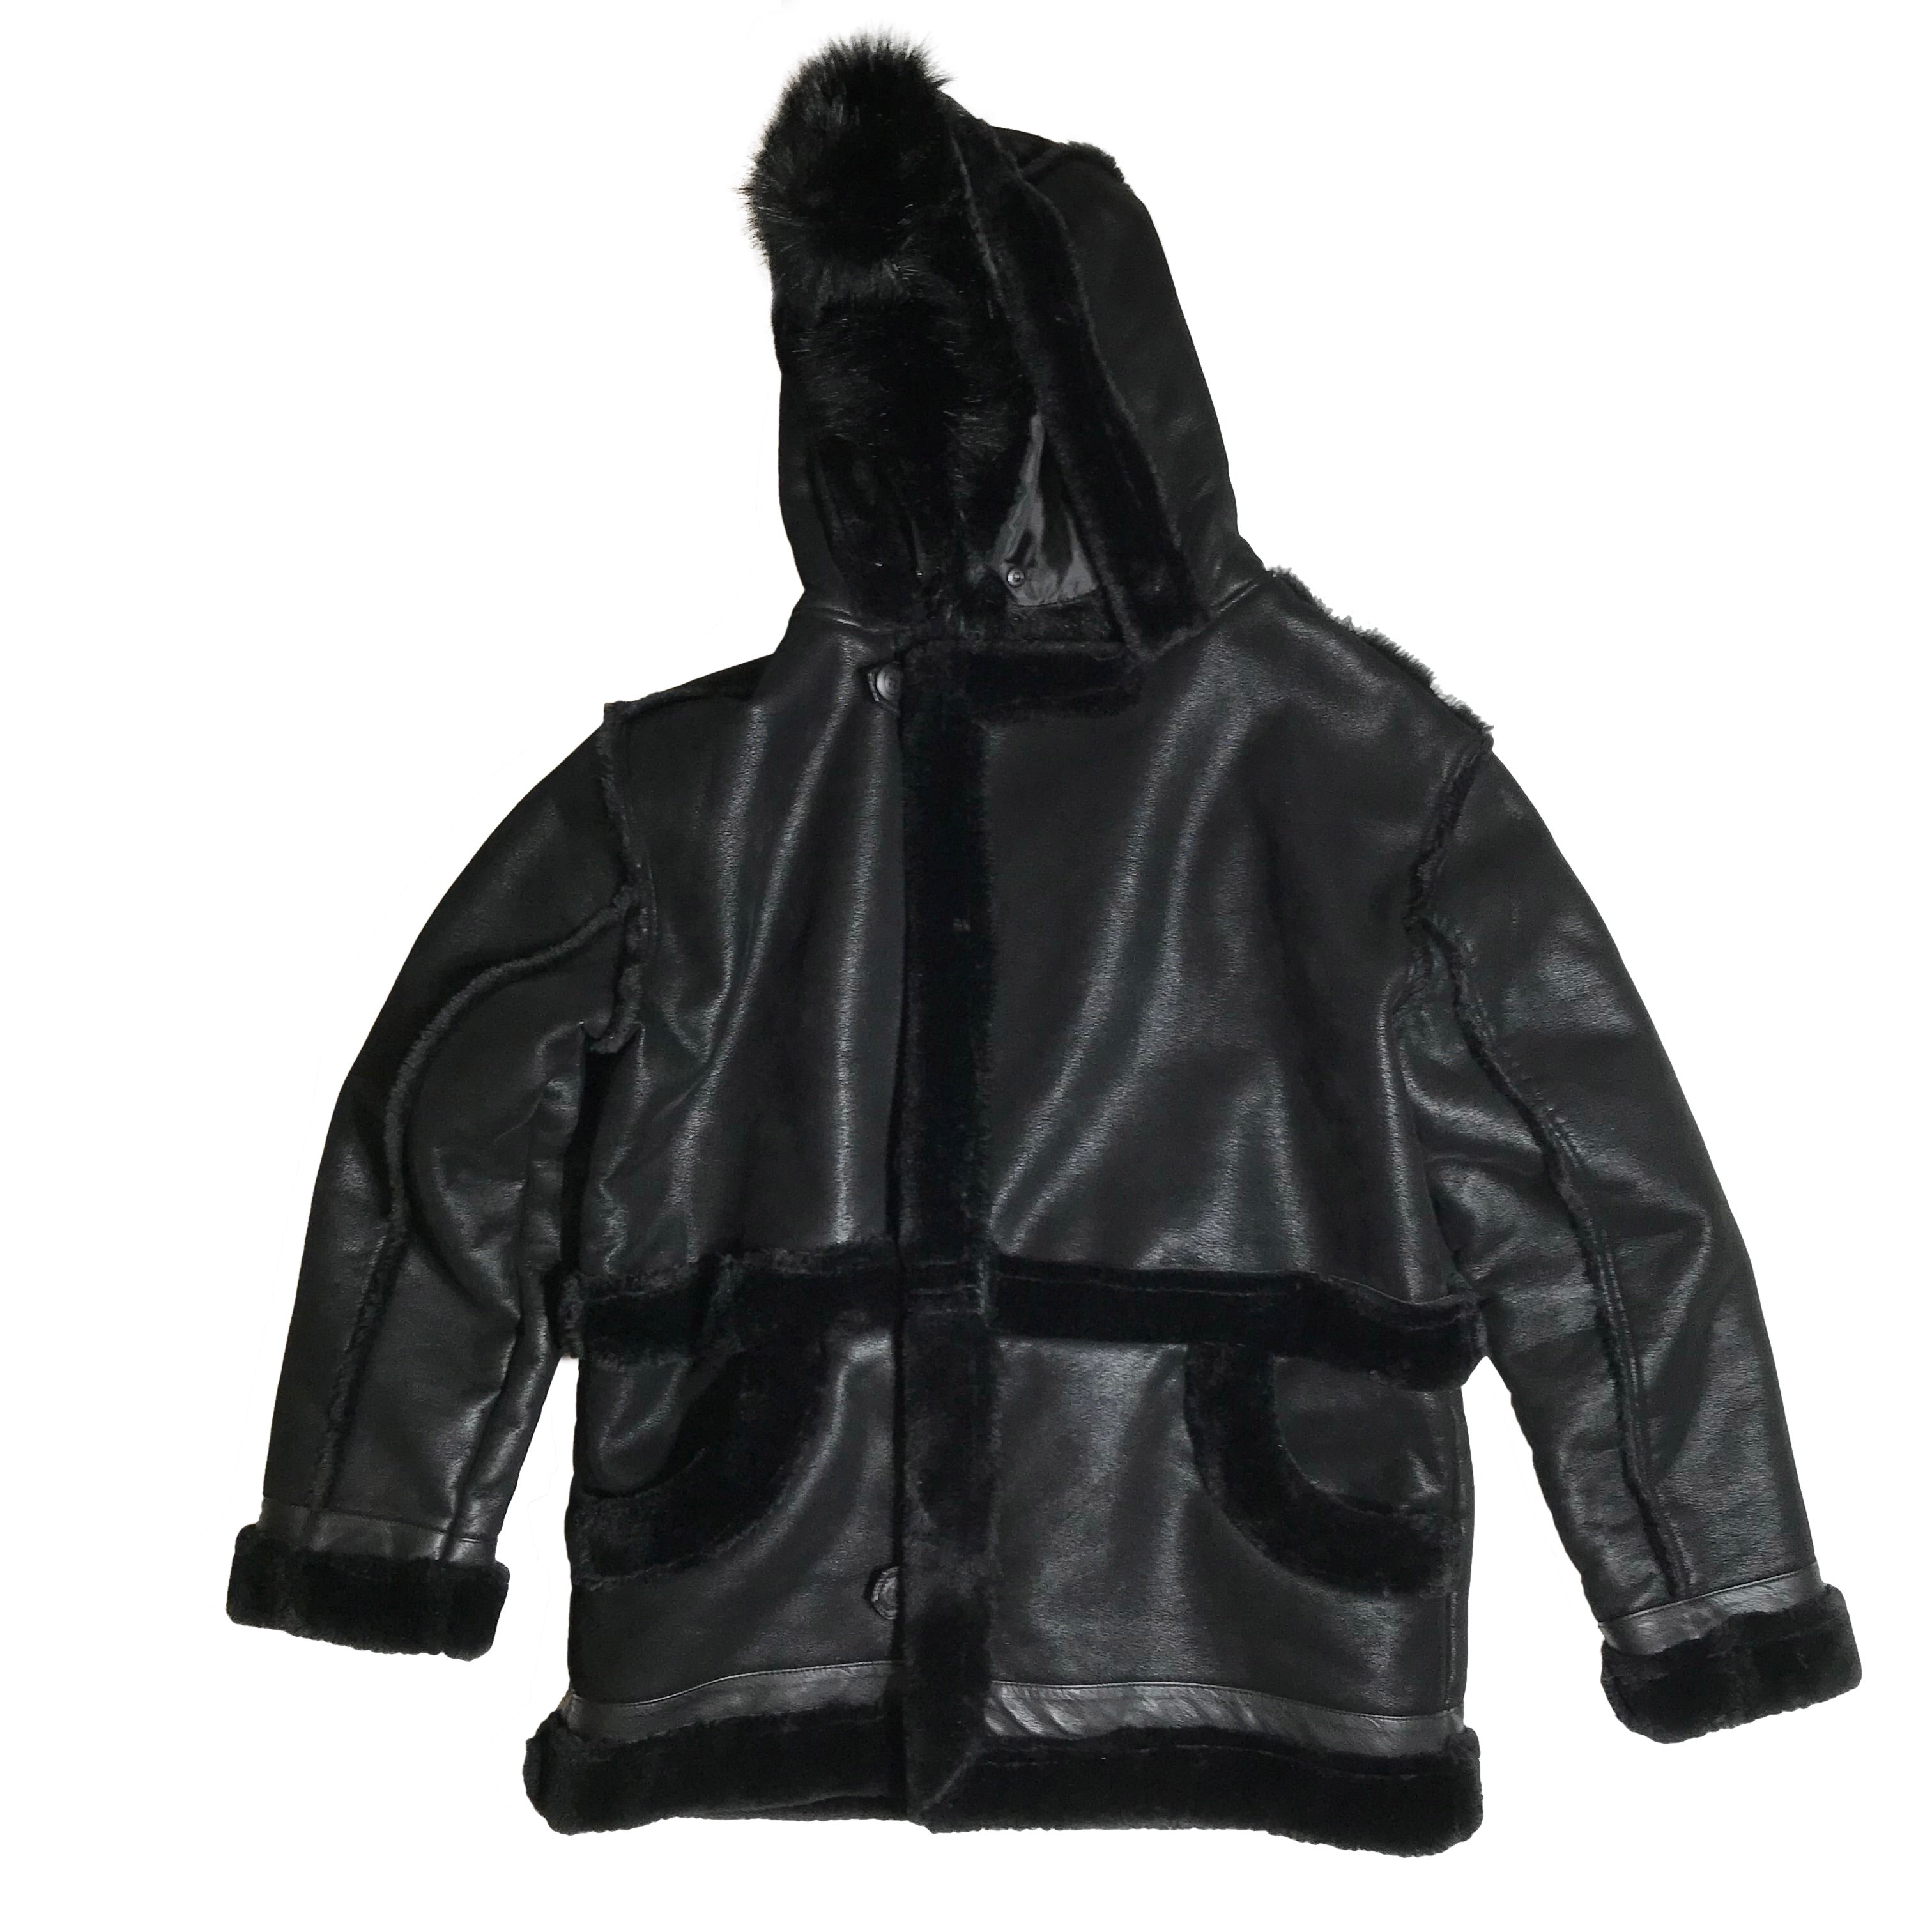 JORDAN CRAIG SHEARLING JACKET LEGACY EDITION BLACK